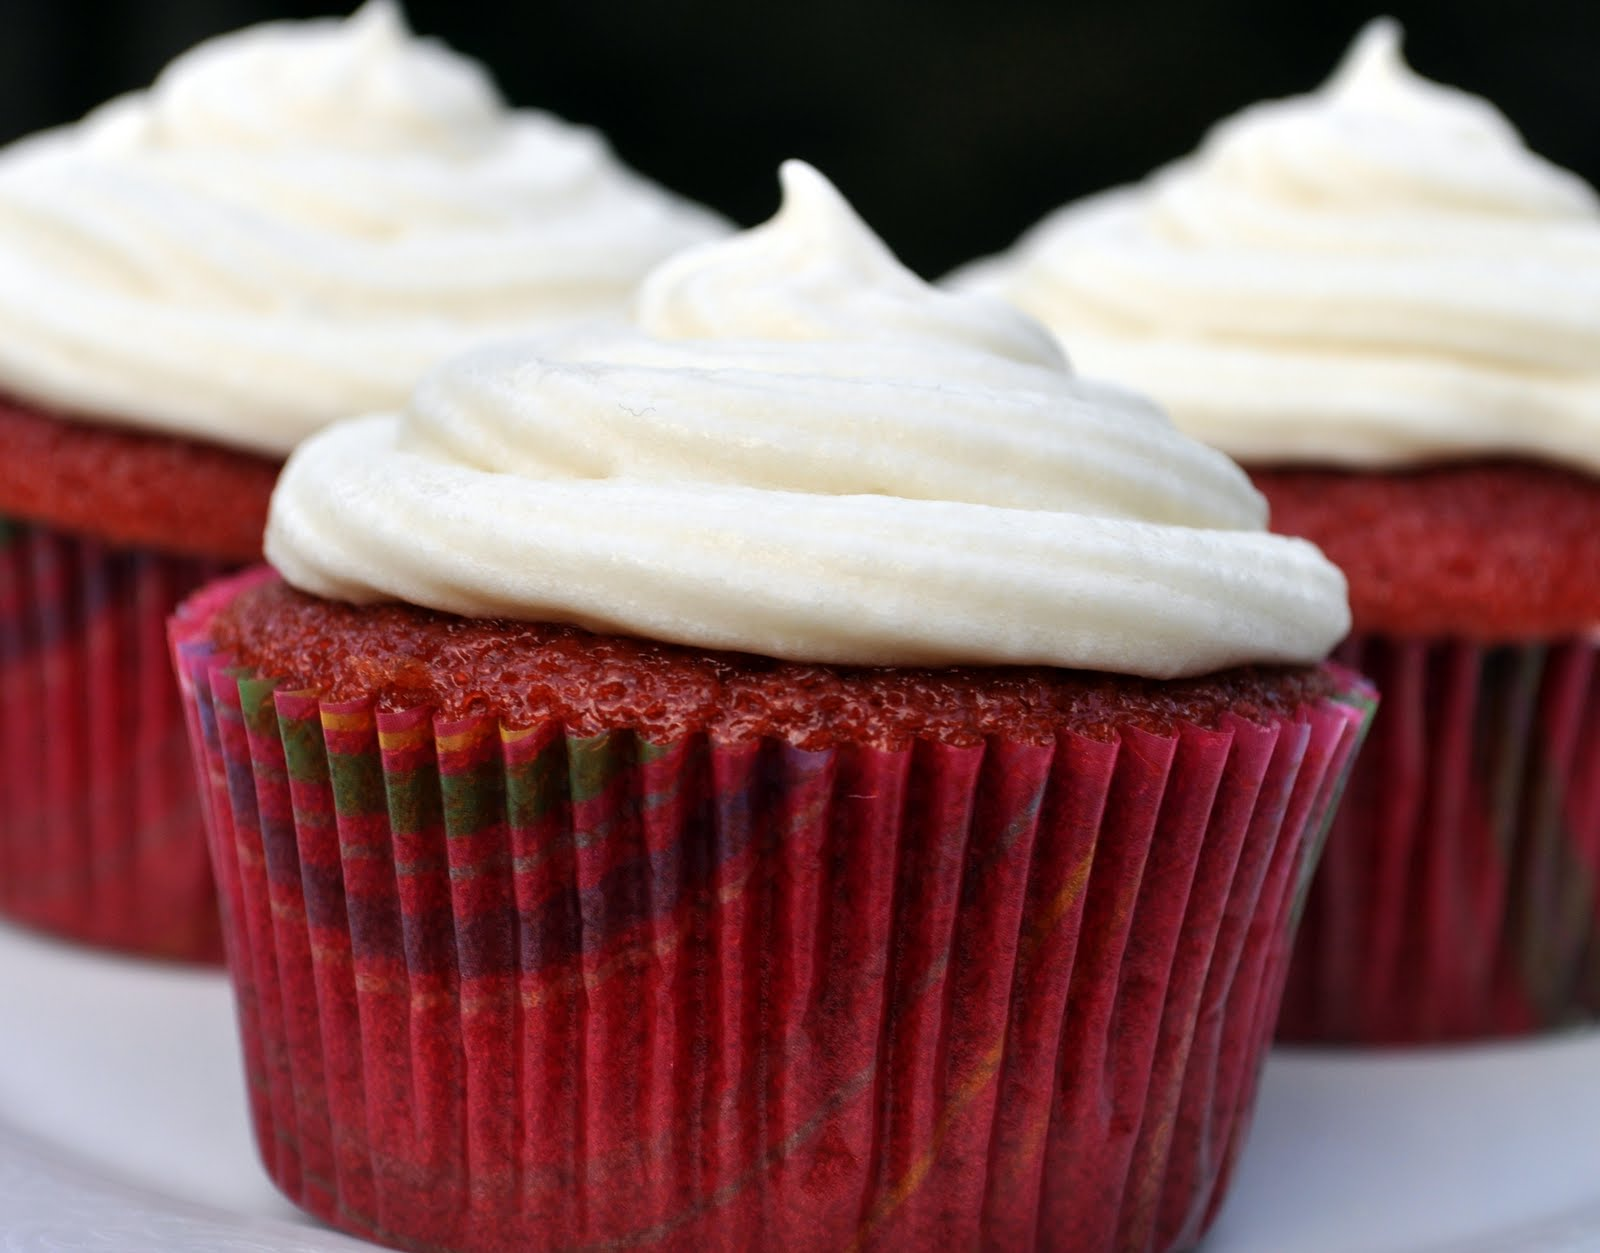 Our Italian Kitchen: Stuffed Red Velvet Cupcakes with ...